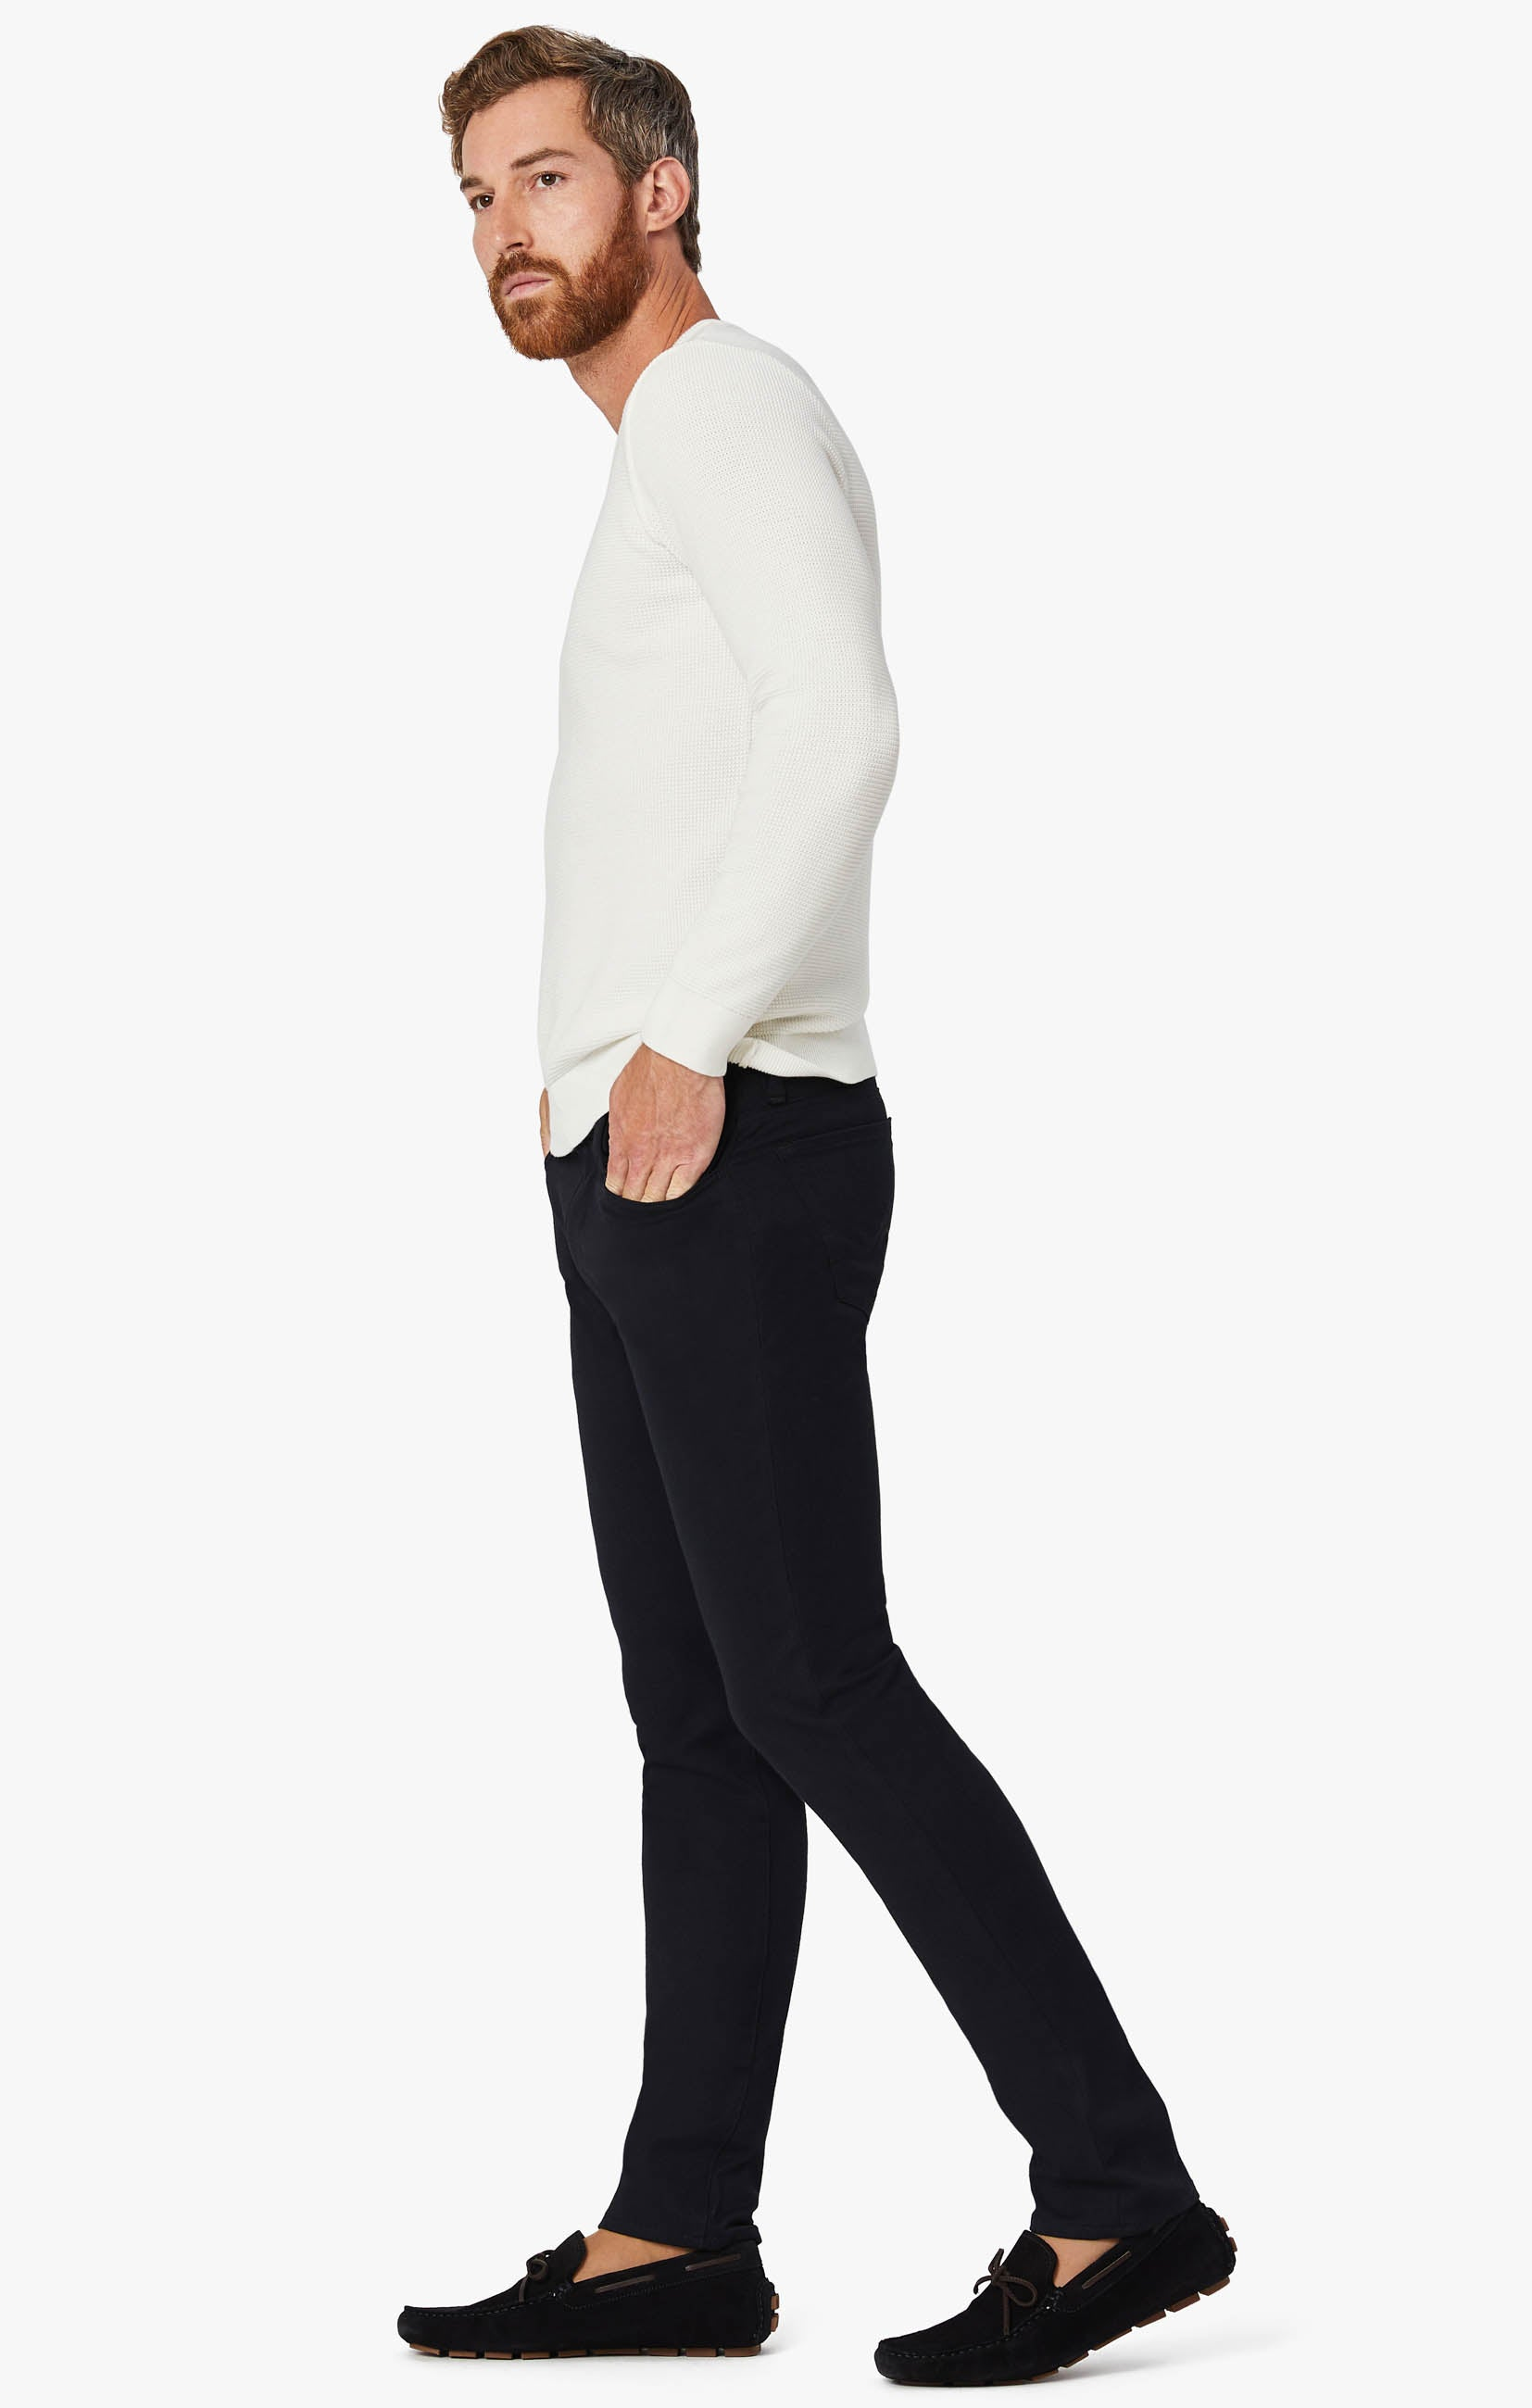 Charisma Classic Fit Pants in Navy Winter Cashmere Image 1